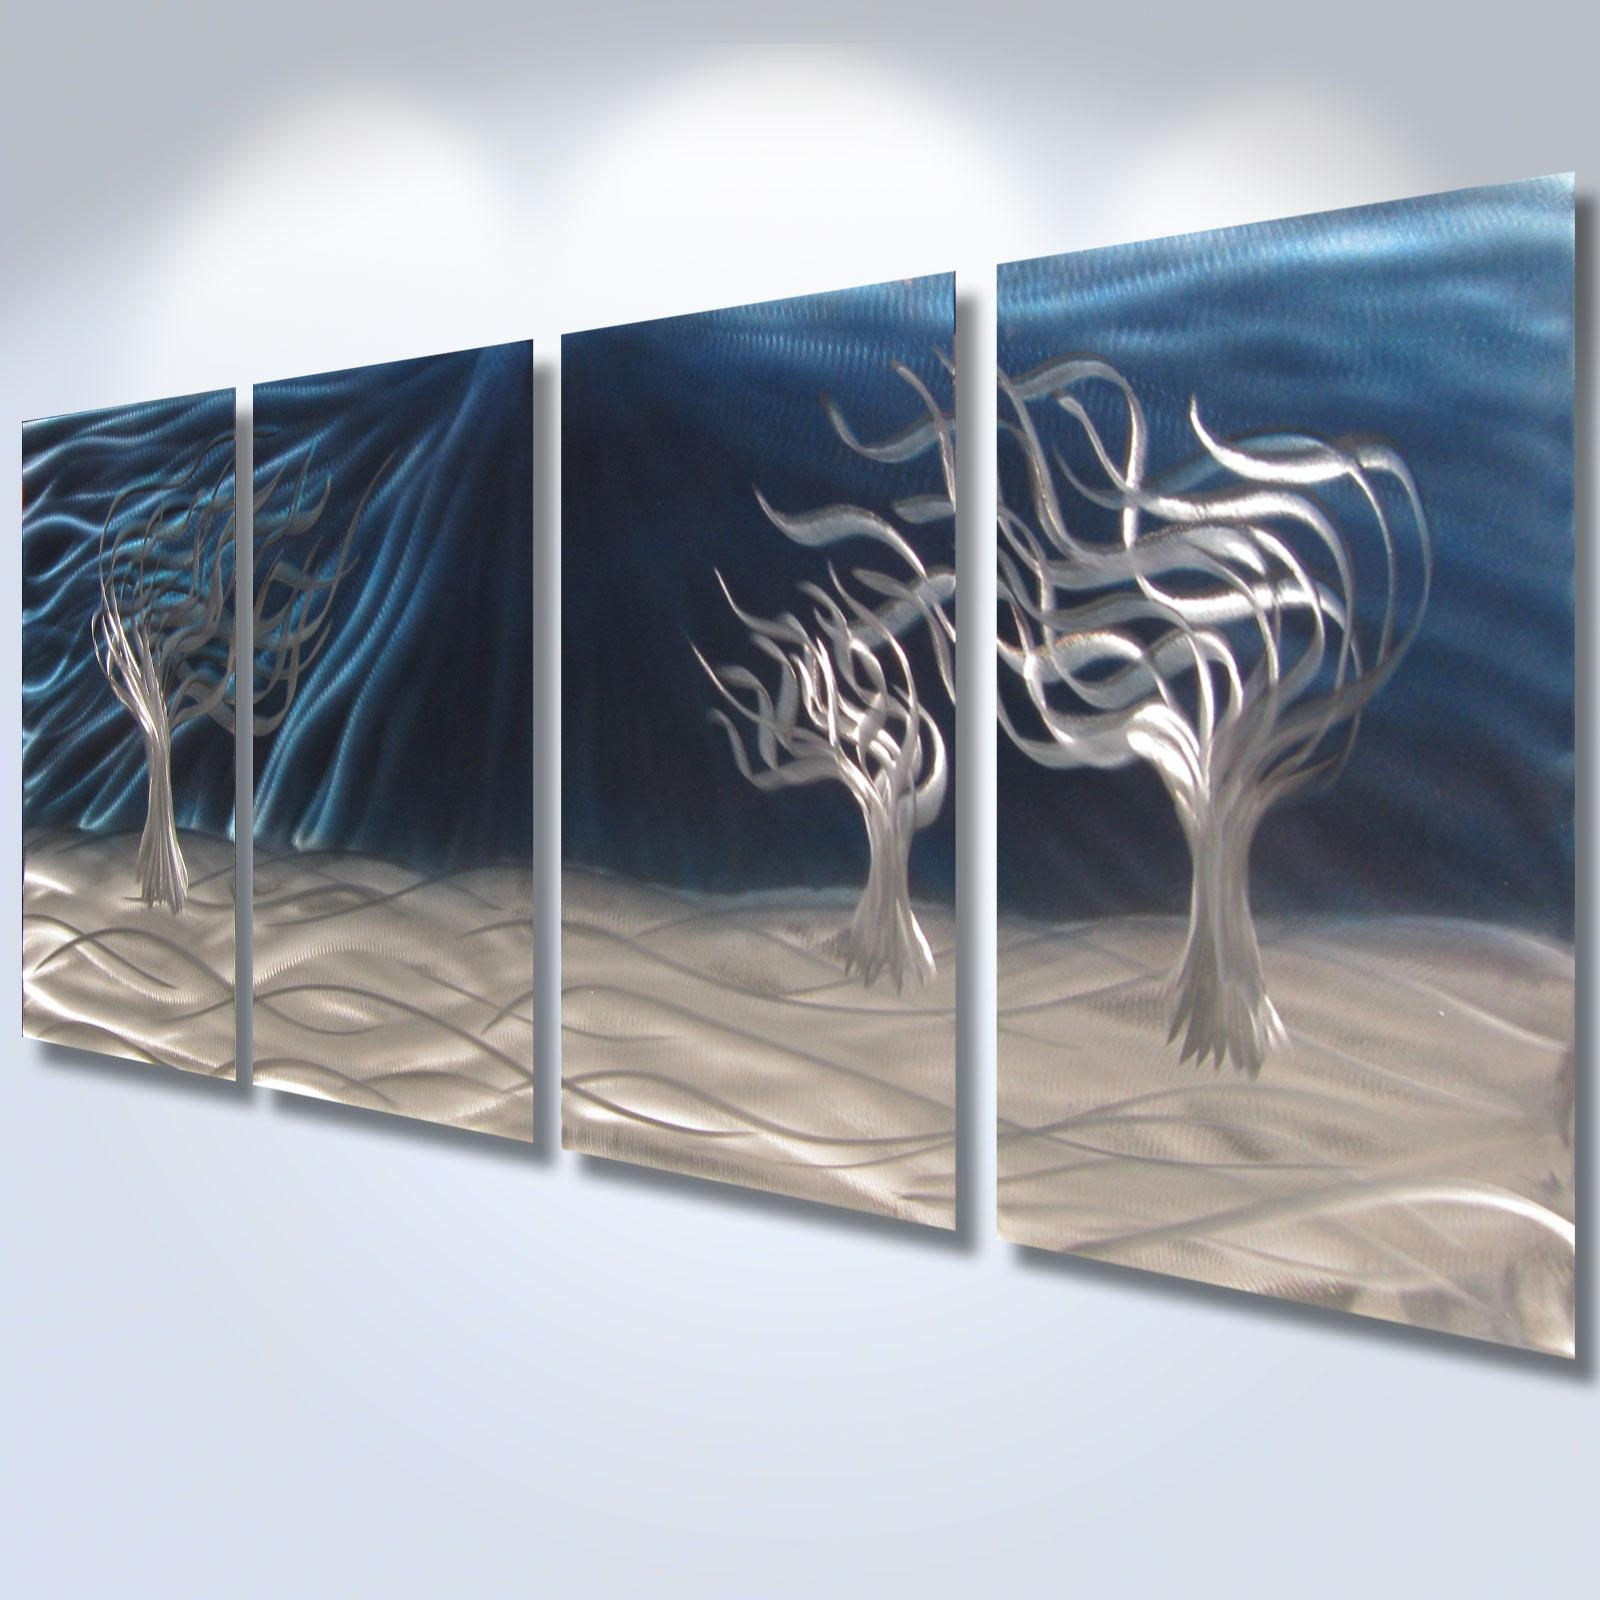 3 Trees Blue – Abstract Metal Wall Art Contemporary Modern Decor With Metal Tree Wall Art Sculpture (View 15 of 20)